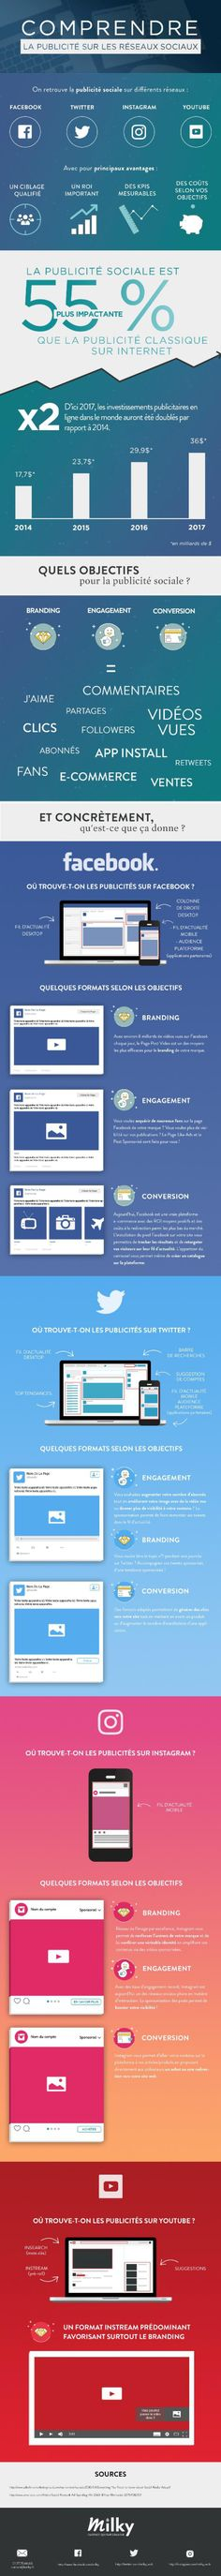 Publicité sur les réseaux sociaux #infographie [FR] Seo Marketing, Business Marketing, Content Marketing, Social Media Marketing, Digital Marketing, Social Media Trends, Social Networks, Ecommerce Seo, Web Design